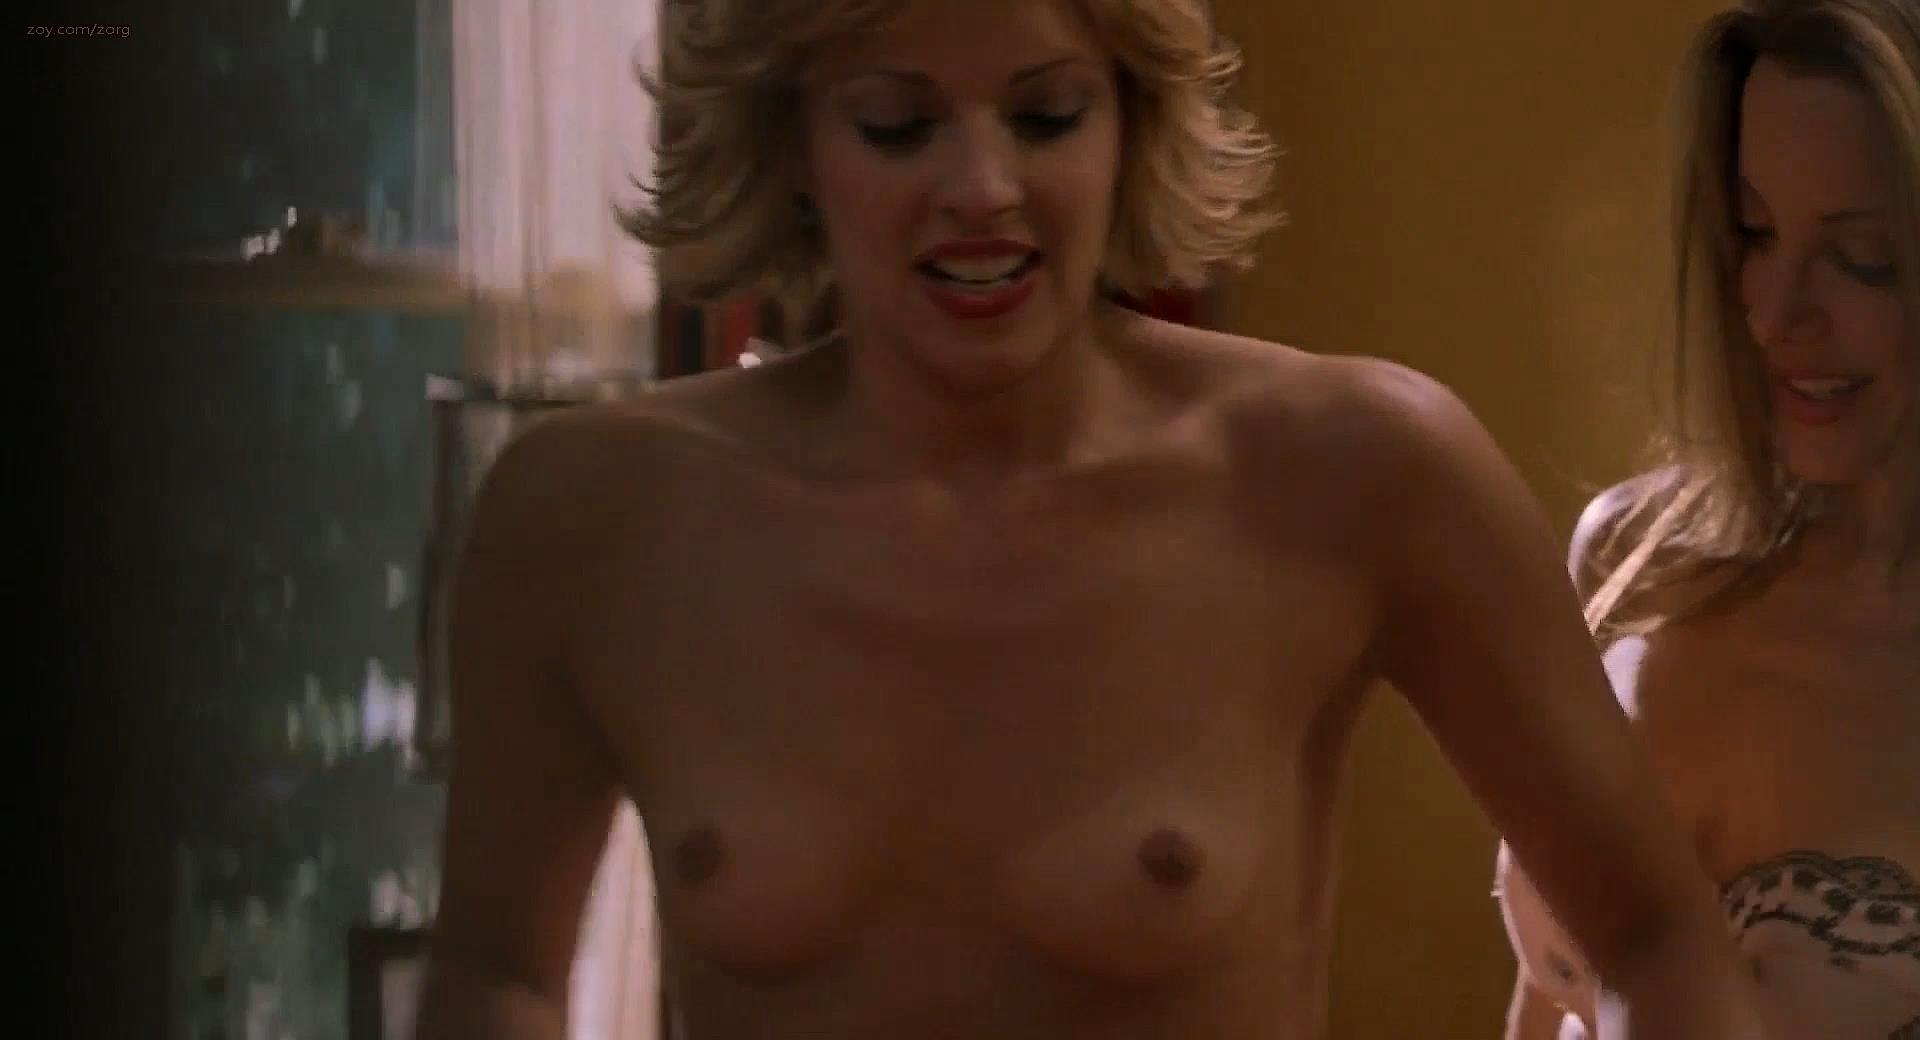 American Pie Actress Porn Video lisa arturo nude topless and denise faye nude and lesbian